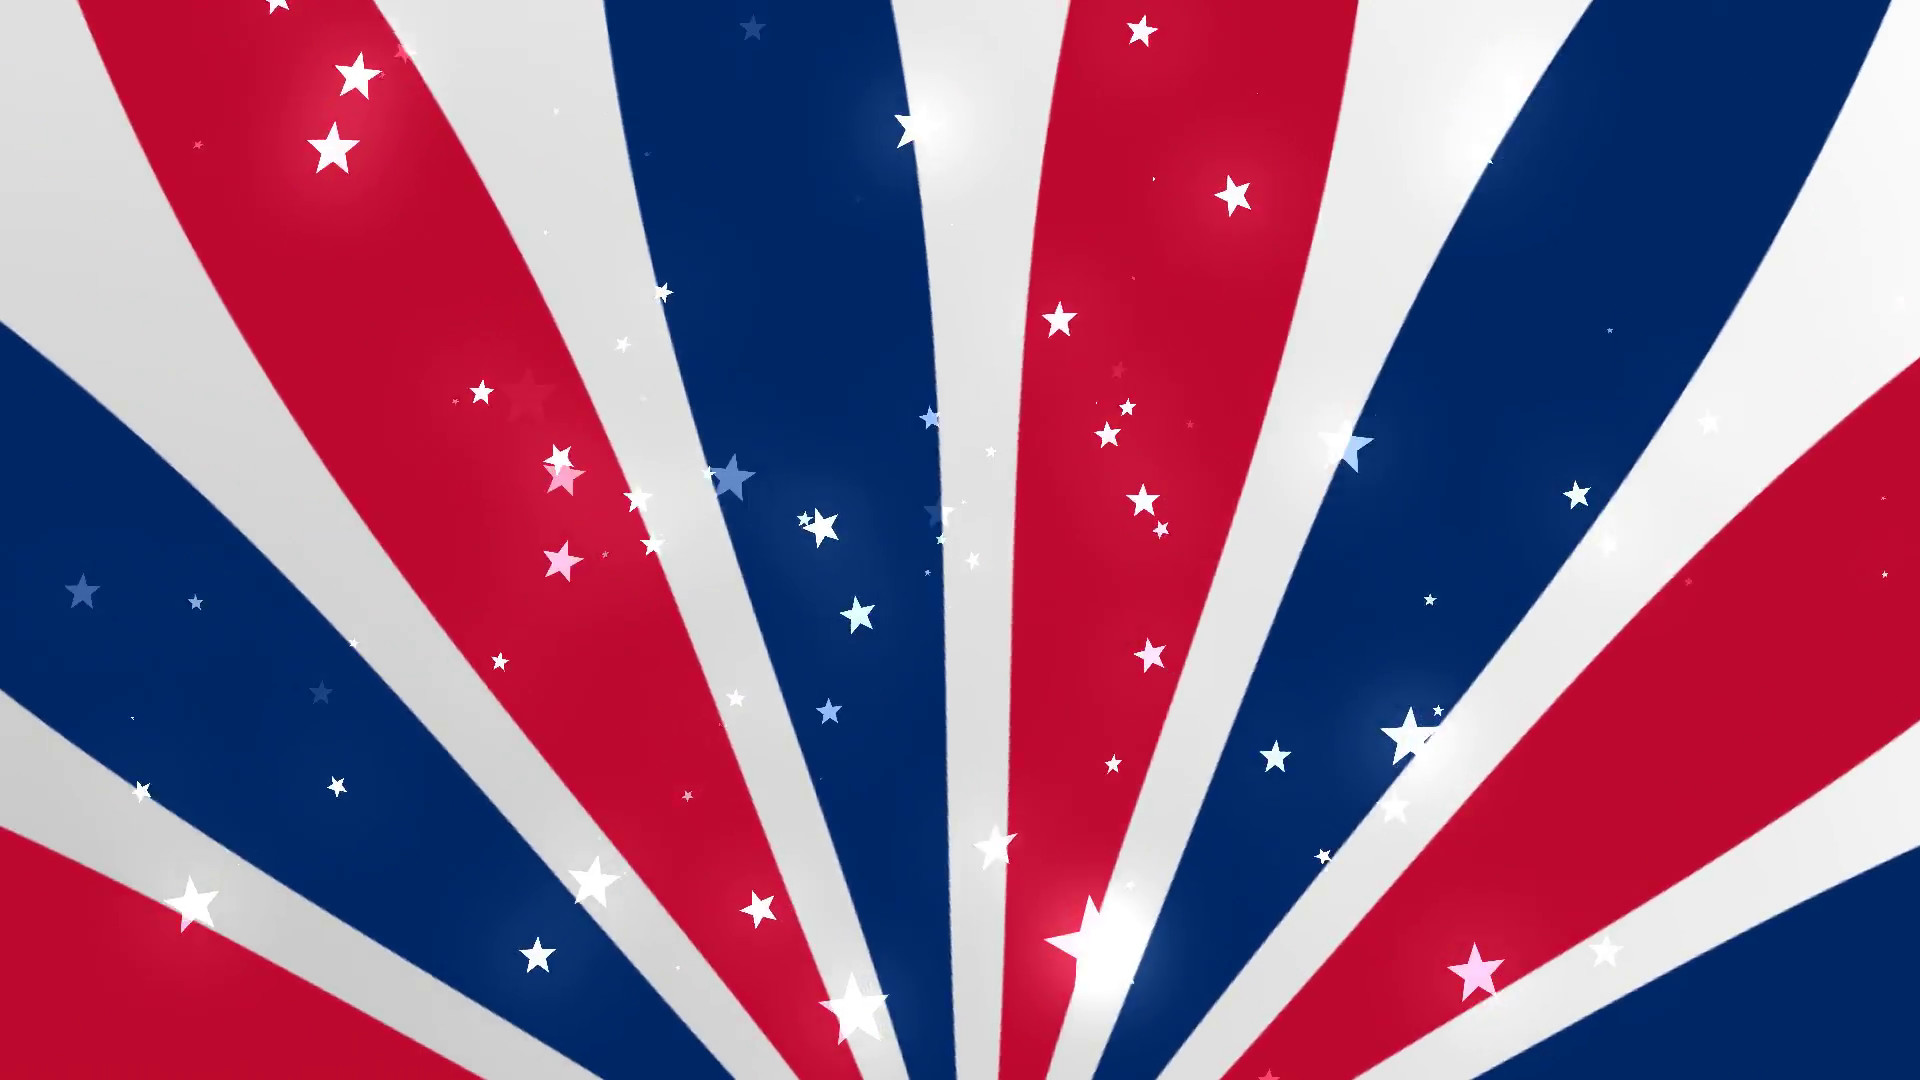 3d Moving Wallpaper Download For Windows 7 Stars And Stripes Background 44 Images